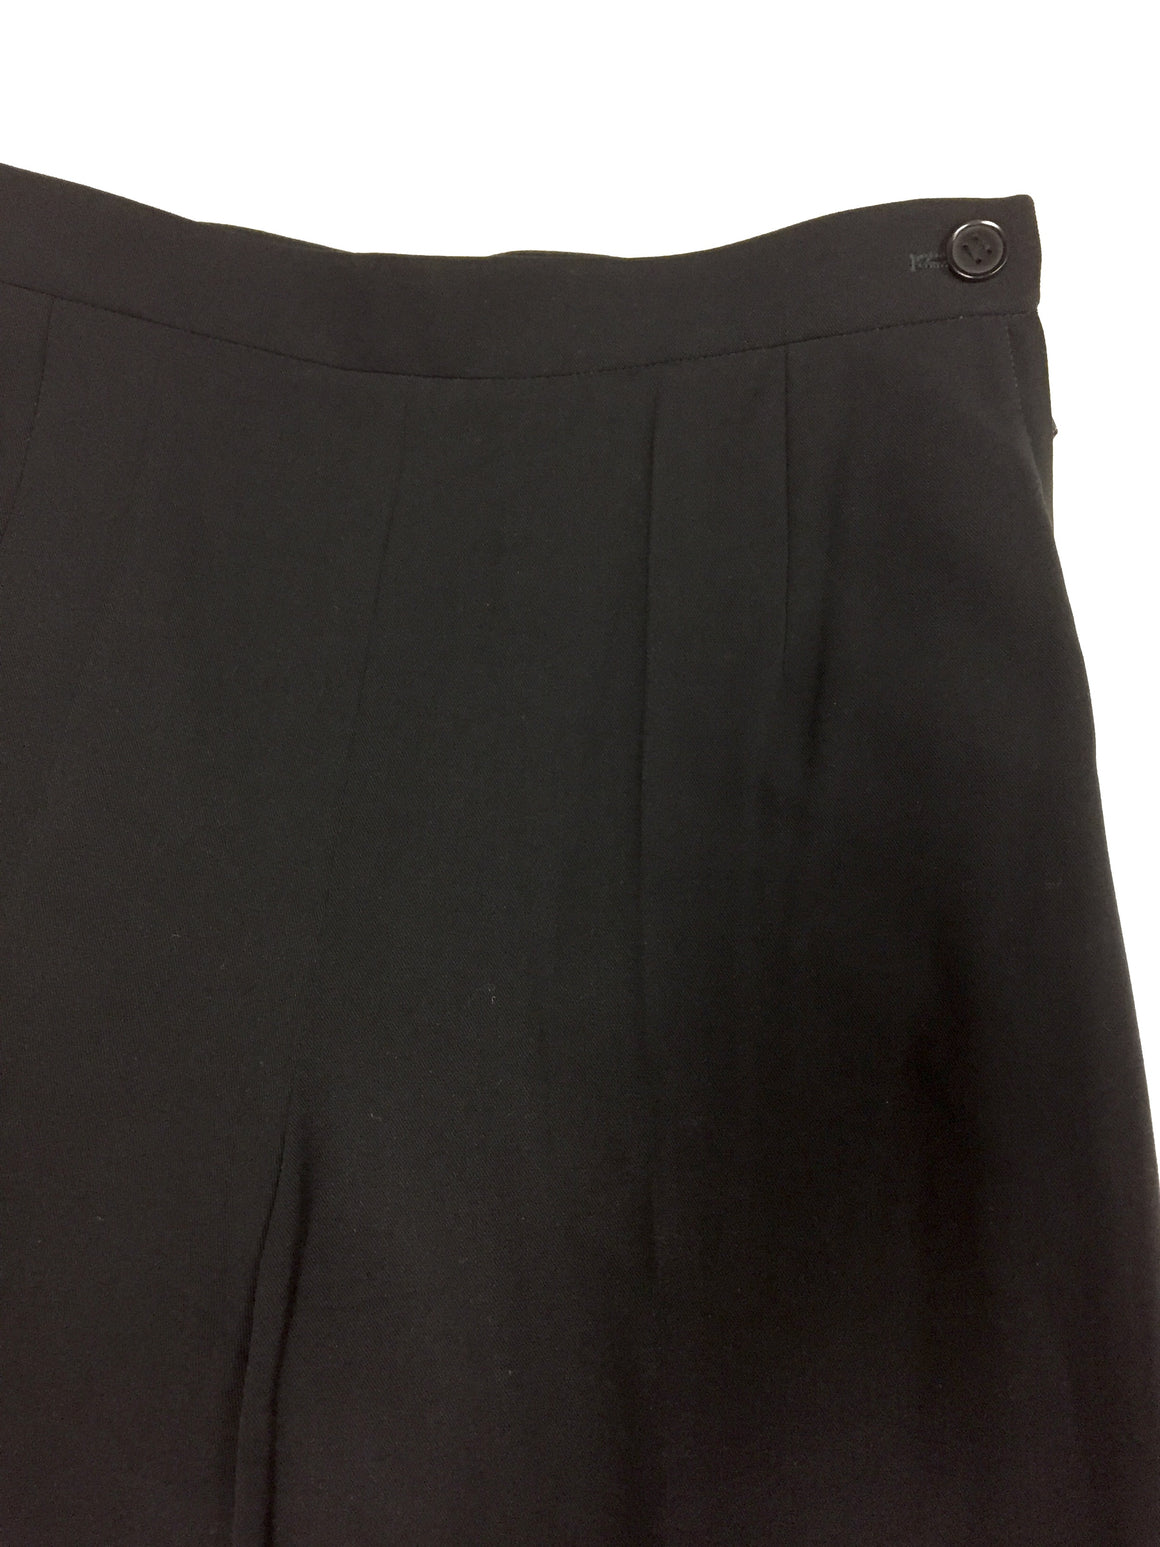 bisbiz.com HERMES Black Wool-Blend Gabardine Straight-Leg Classic Dress Pants Size: FR 38 / US 6 - Bis Luxury Resale